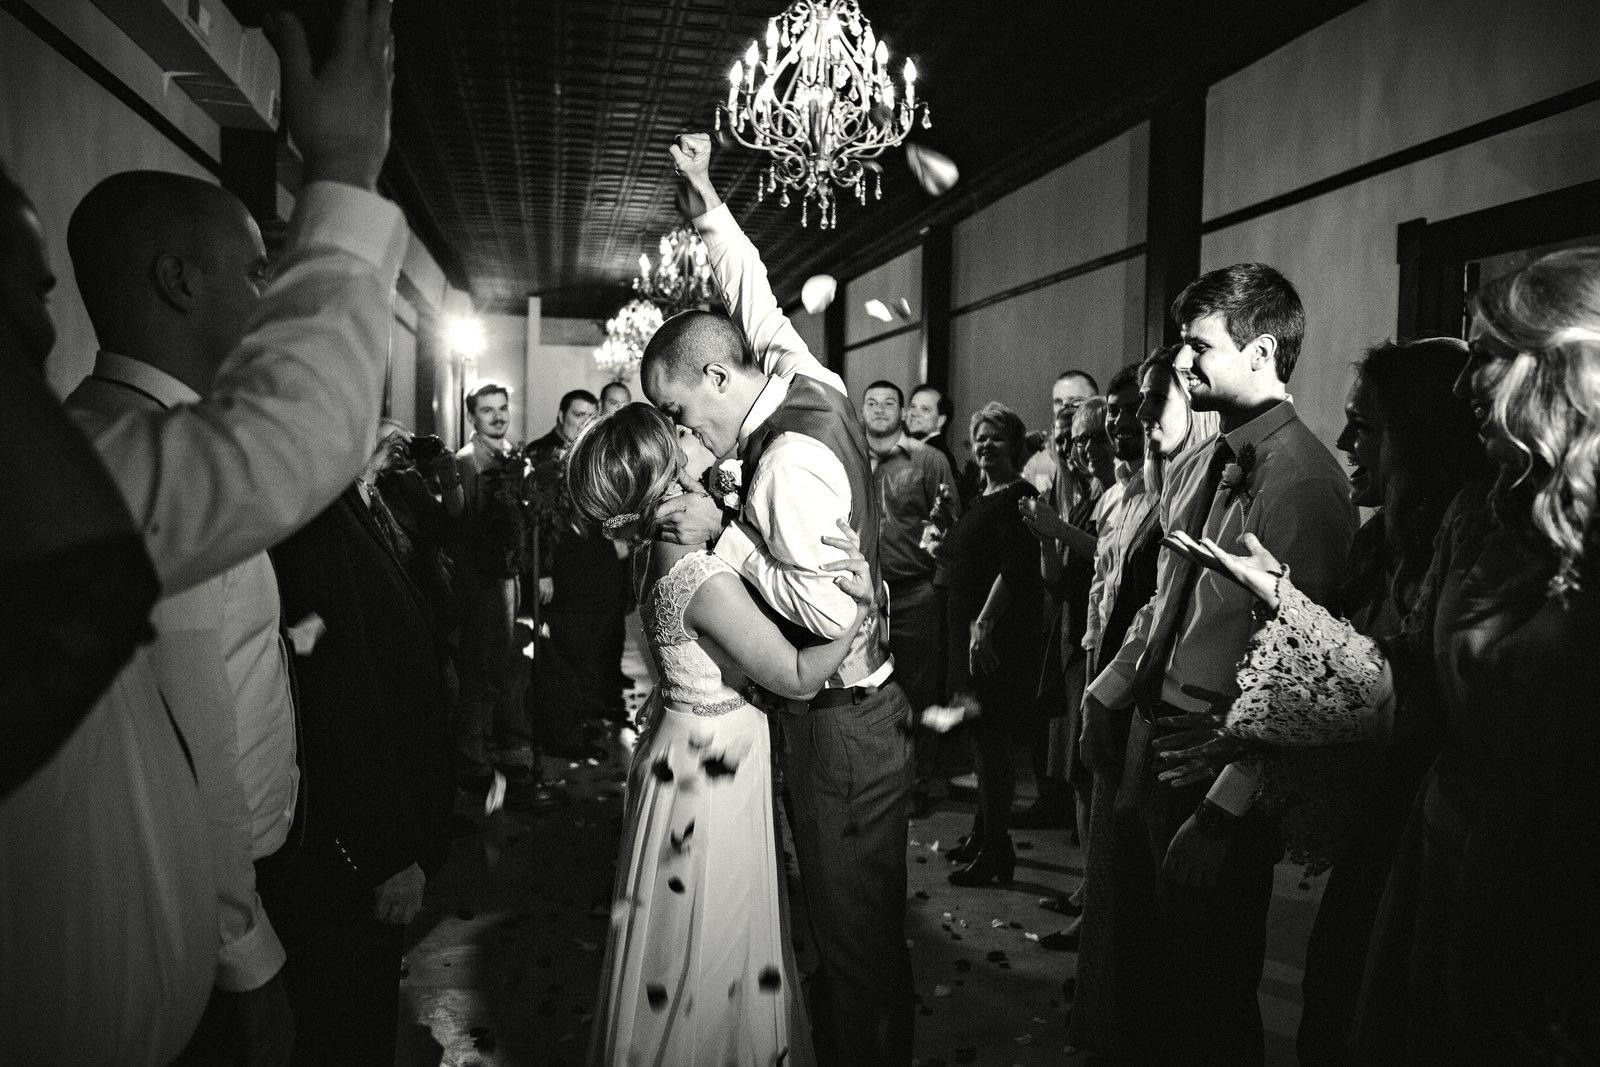 Exiting the reception at Elizabeth Claires Wedding Venue by Knoxville Wedding Photographer, Amanda May Photos.